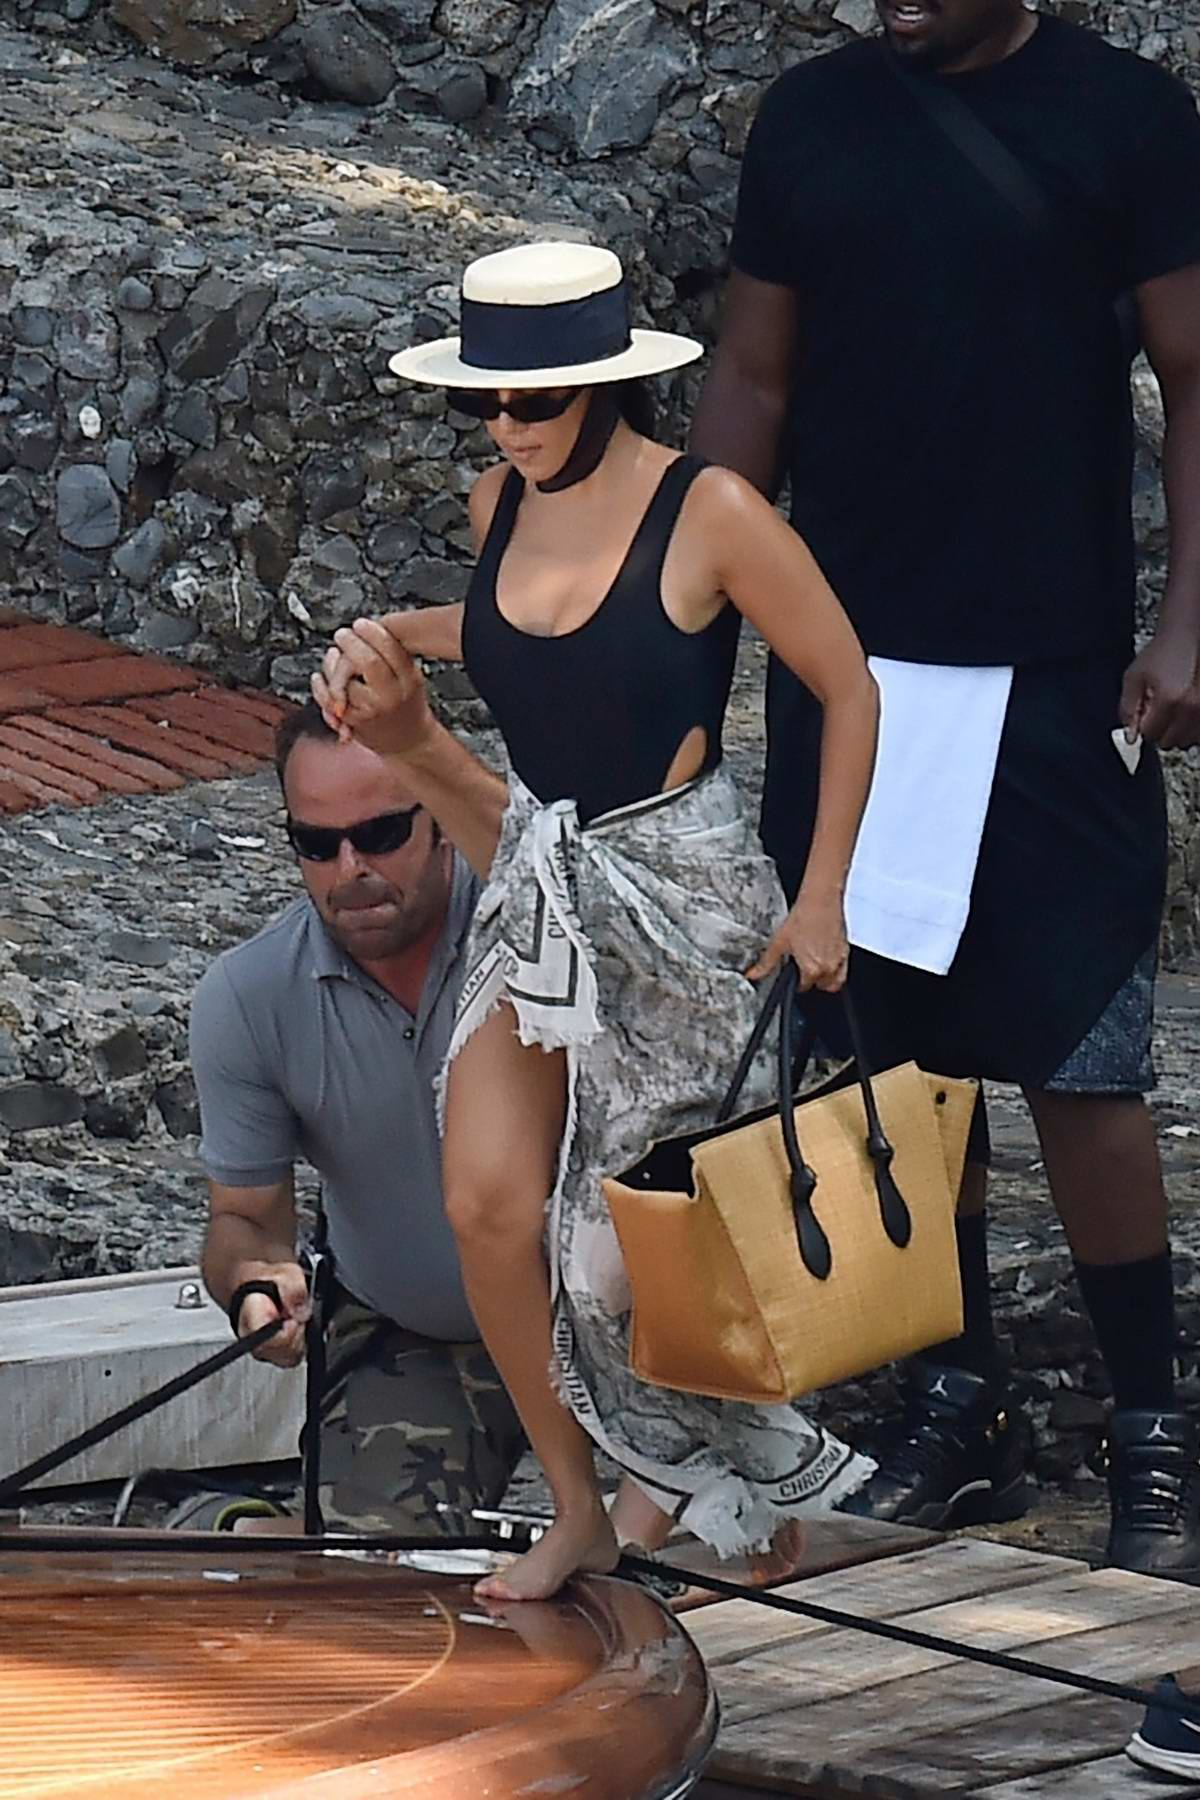 Kourtney Kardashian dons a black swimsuit while enjoying a boat ride during her vacation in Italy